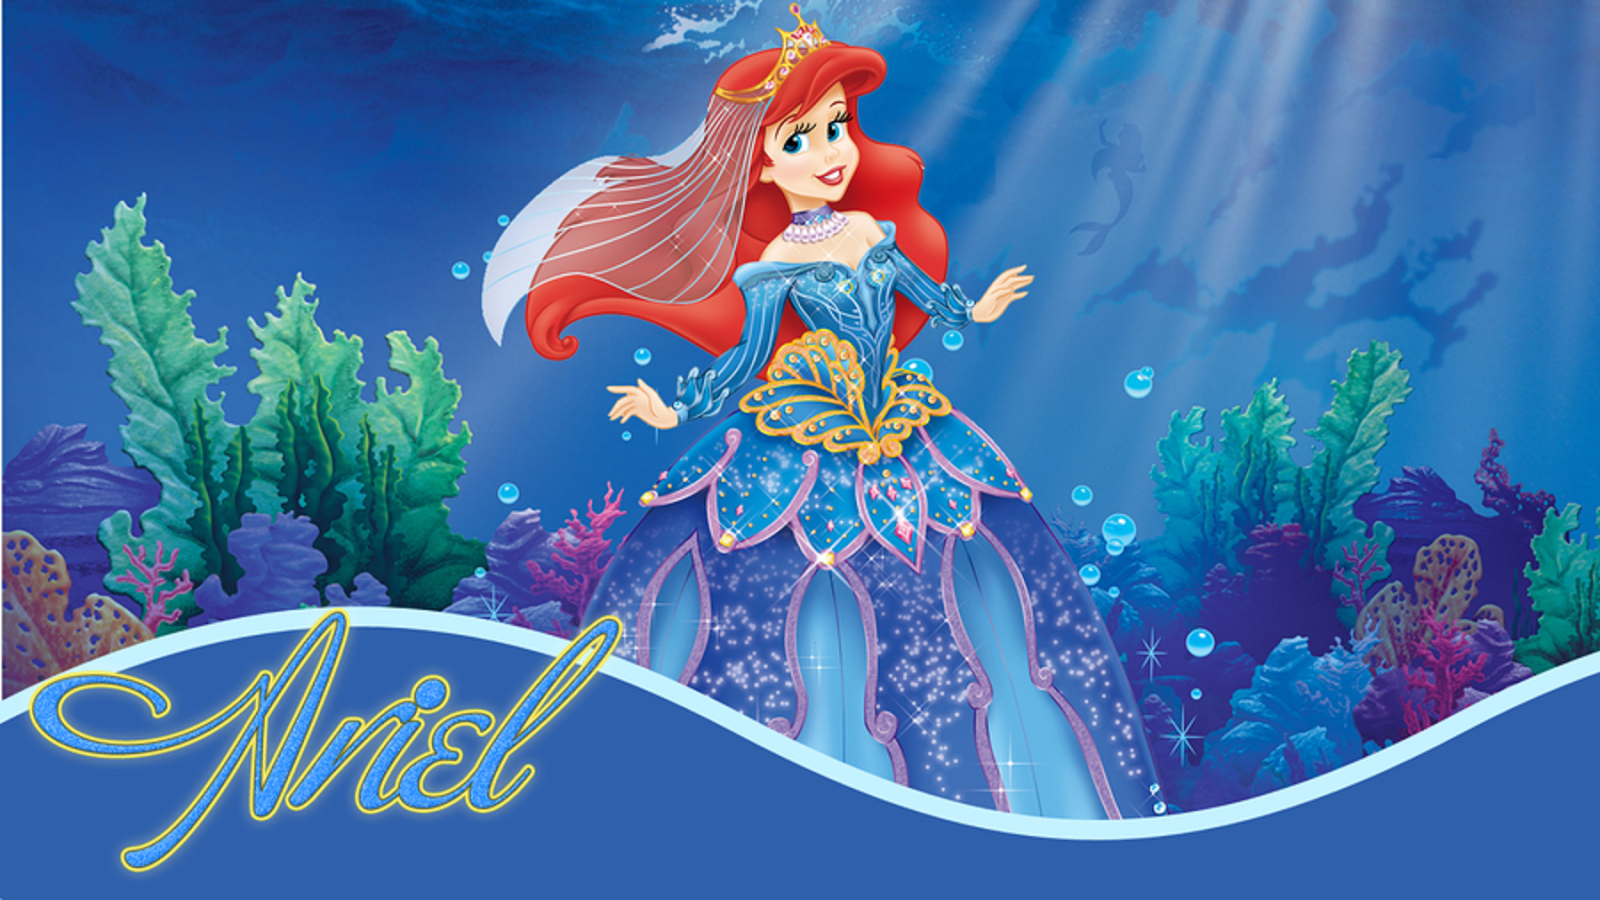 Disney HD Wallpapers Walt Disney Princess Ariel HD Wallpapers 1600x900